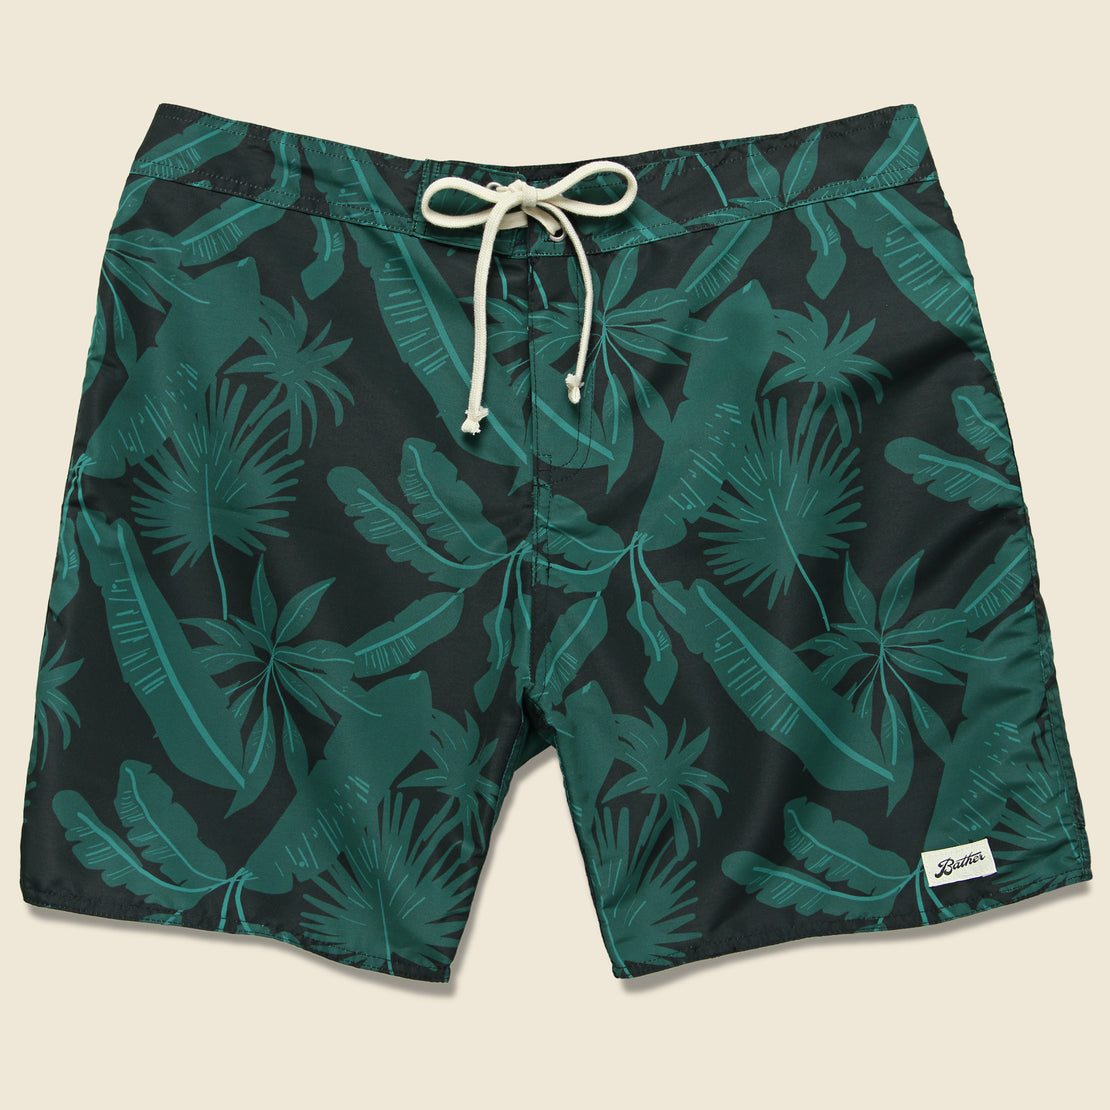 Bather Trunk Co. Tropical Palms Boardshort - Black/Green